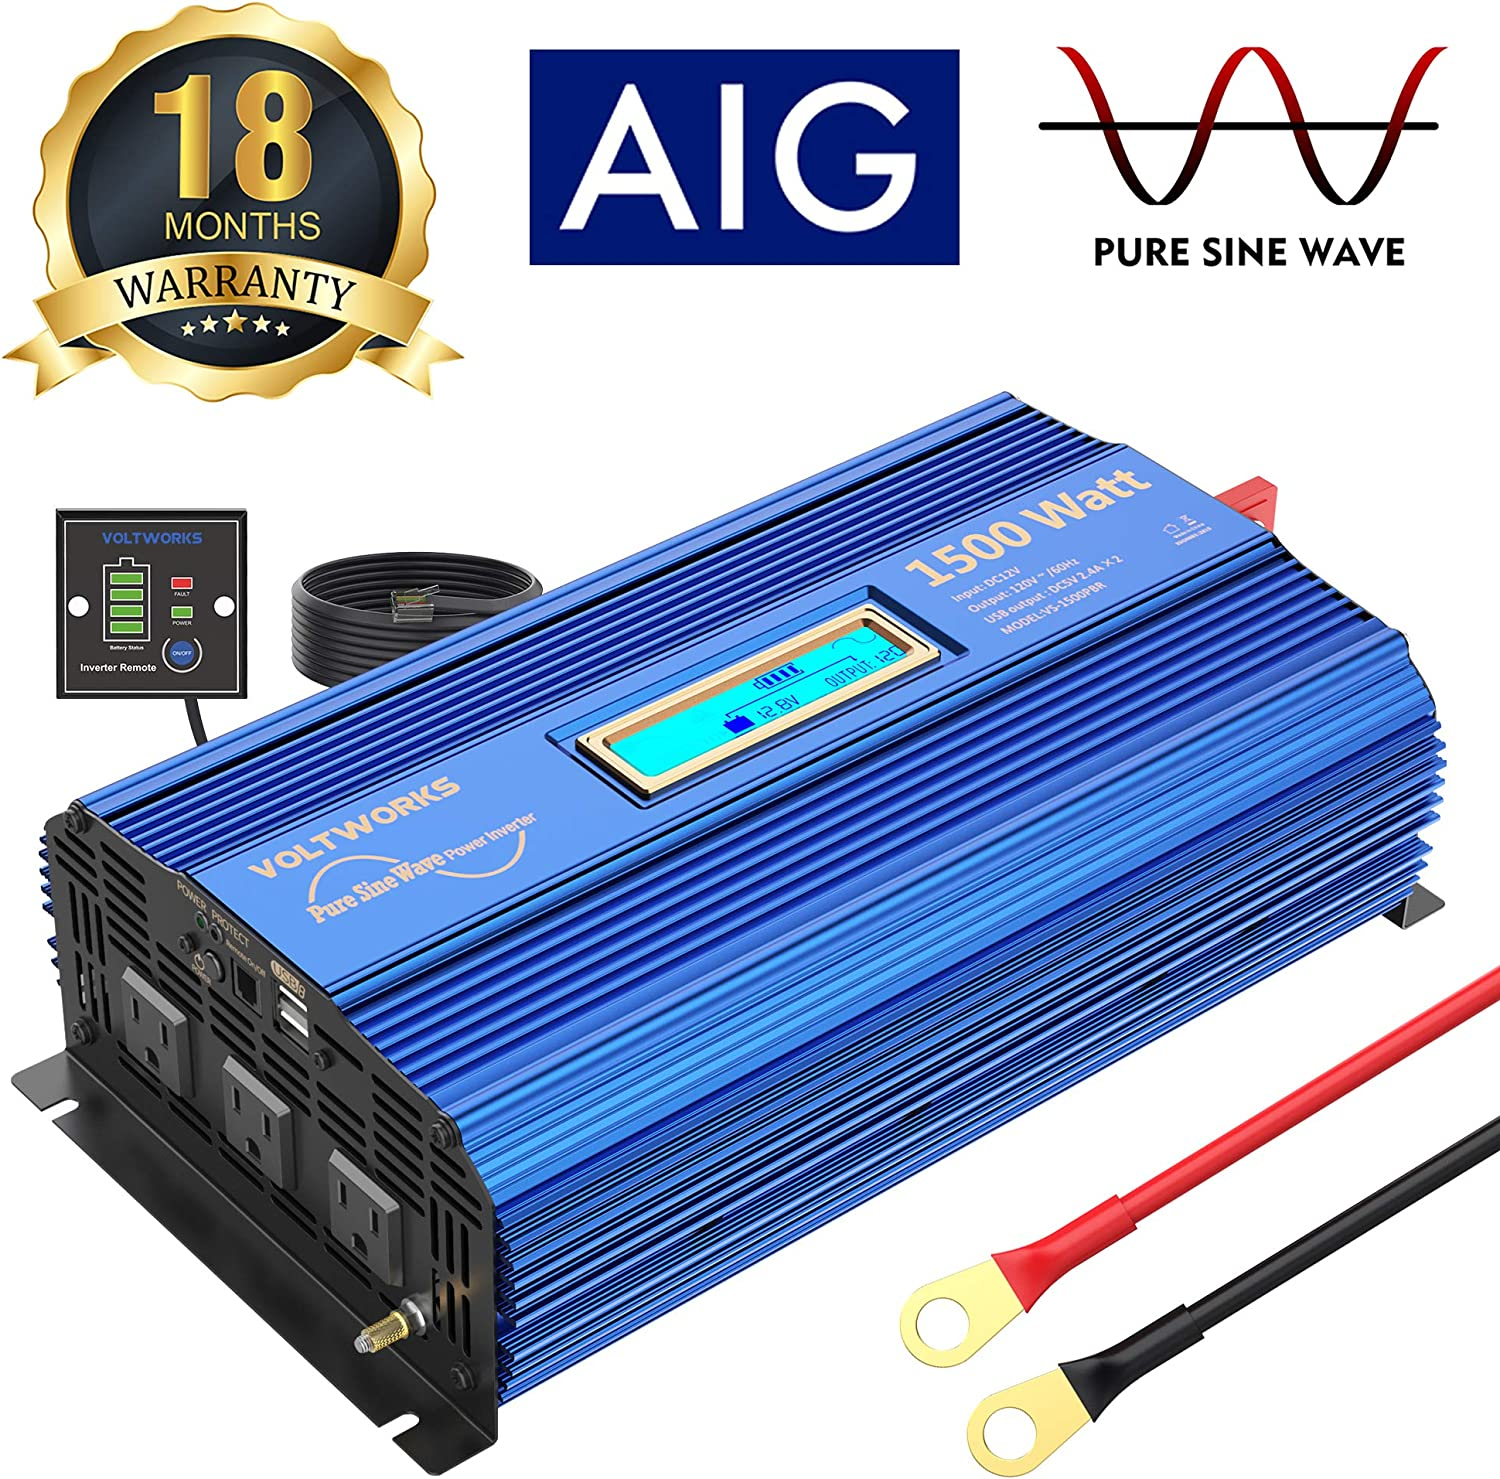 1500W Pure Sine Wave Power Inverter DC 12v to AC 110v-120v with 4.8A Dual USB Ports 3 AC Outlets and Remote Control LCD Display for Home RV Truck